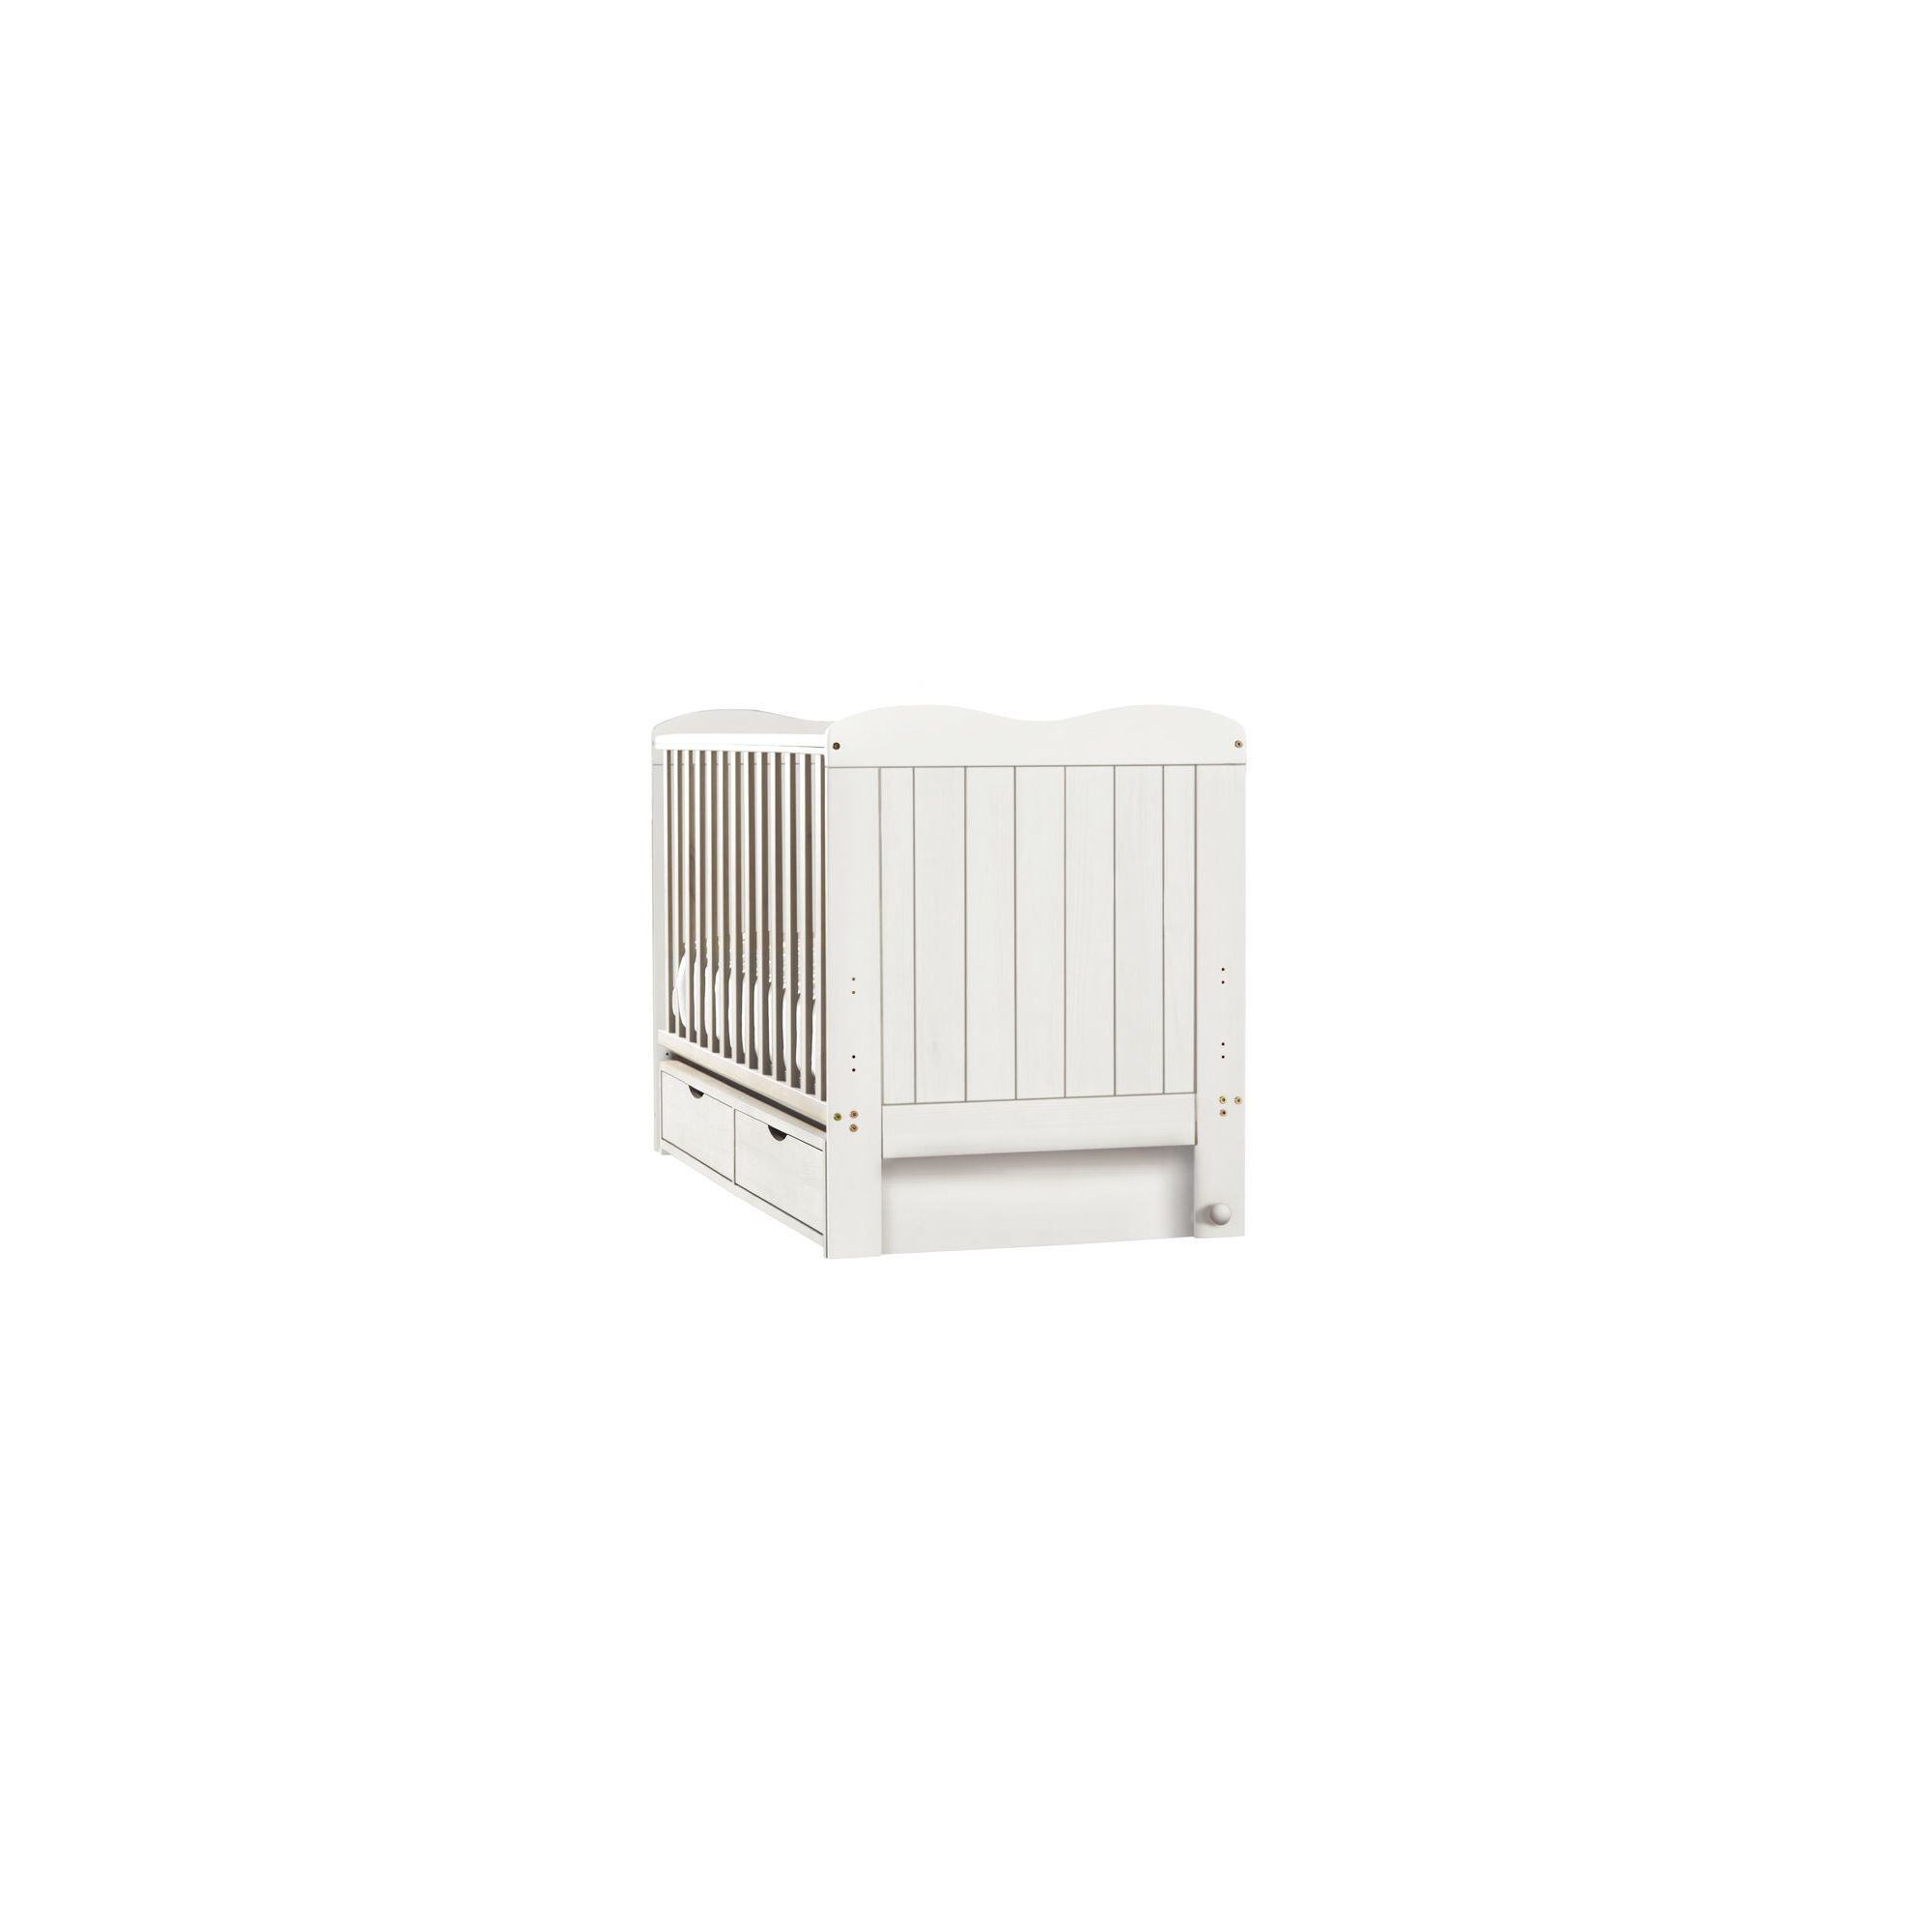 Saplings Glideaway Cot Bed - White at Tescos Direct